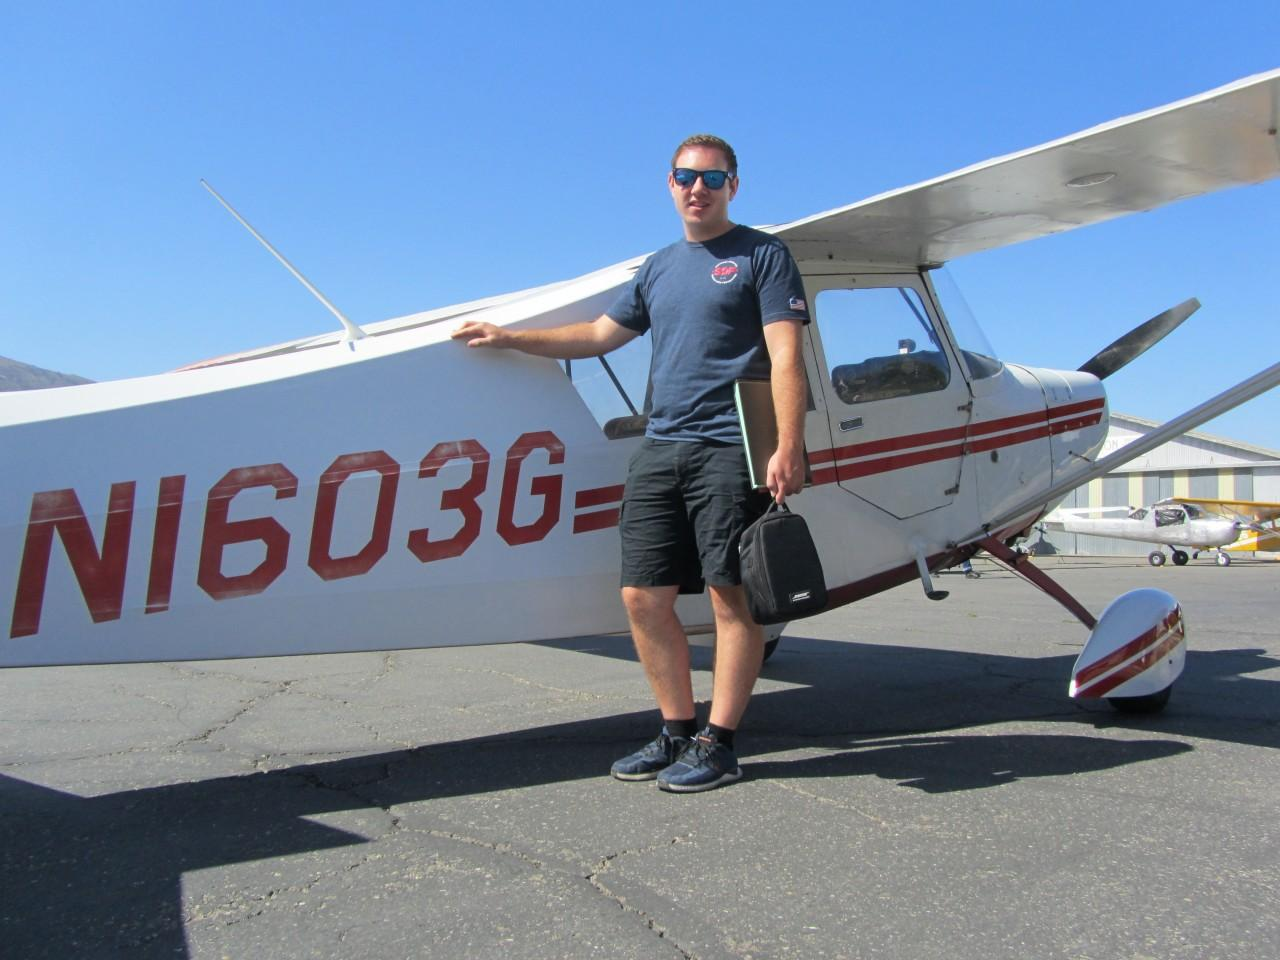 Tailwheel Endorsement - Donnie Lucy